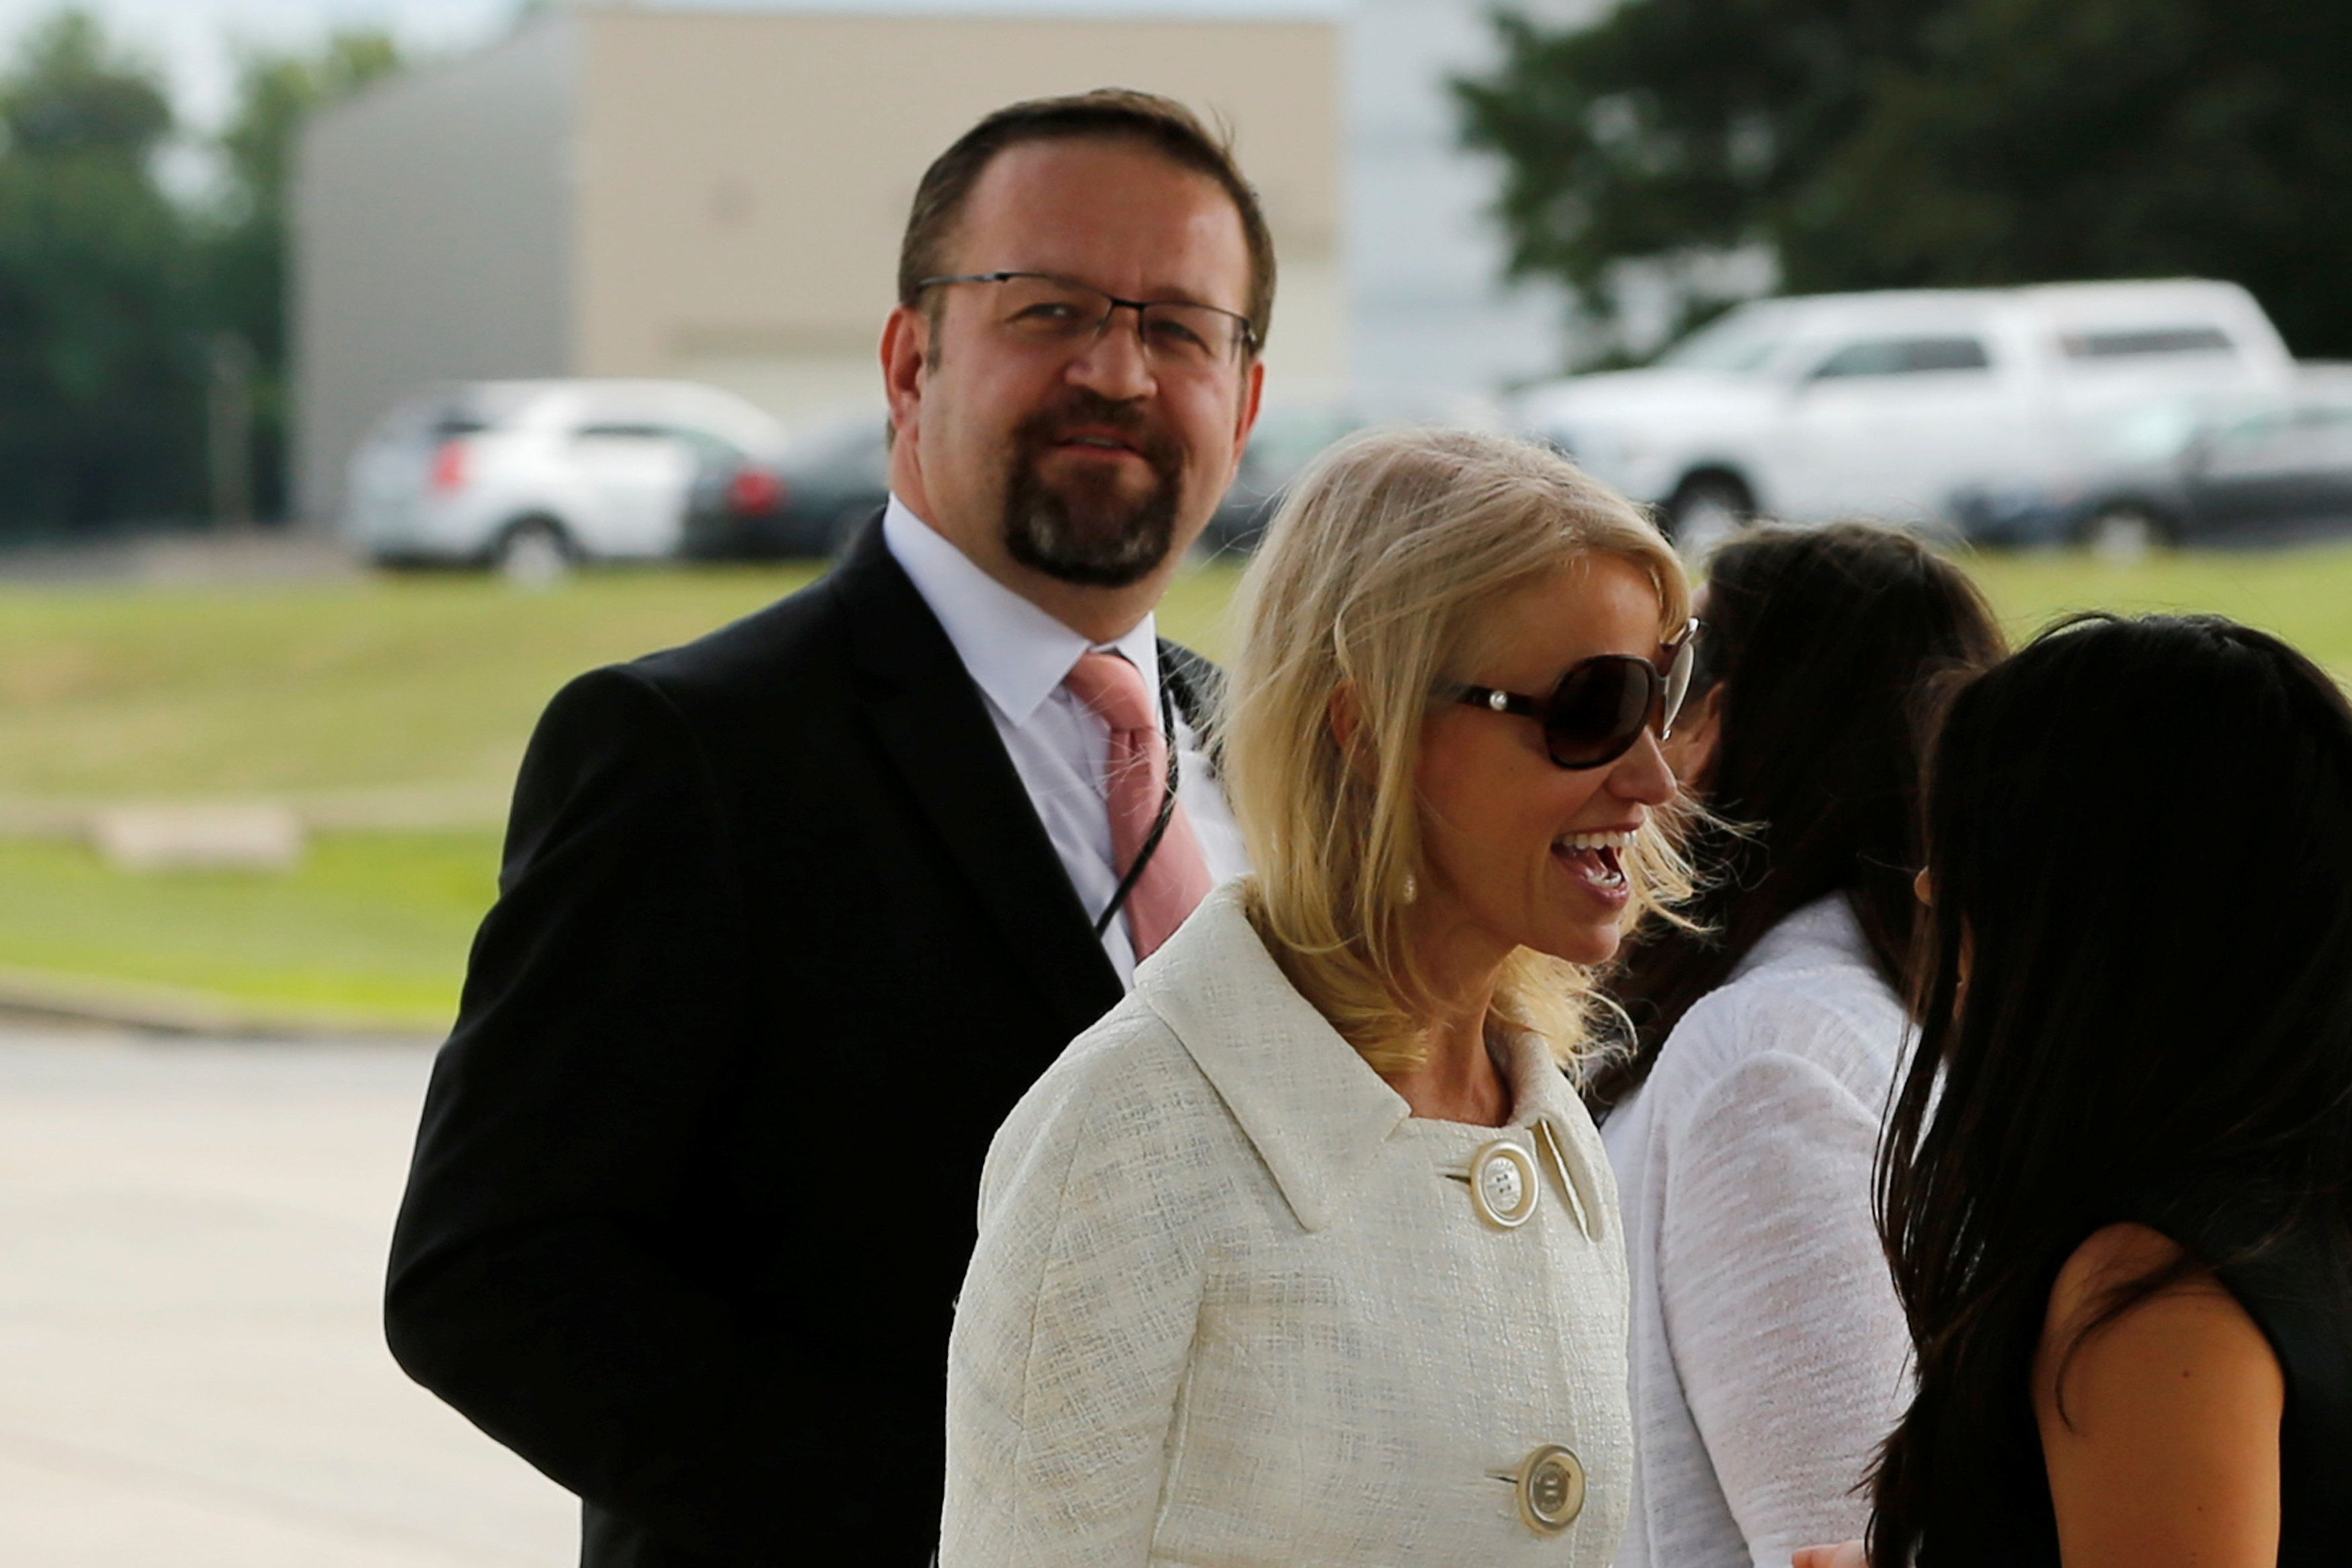 5 Reasons Sebastian Gorka Could Have Been Fired From The White